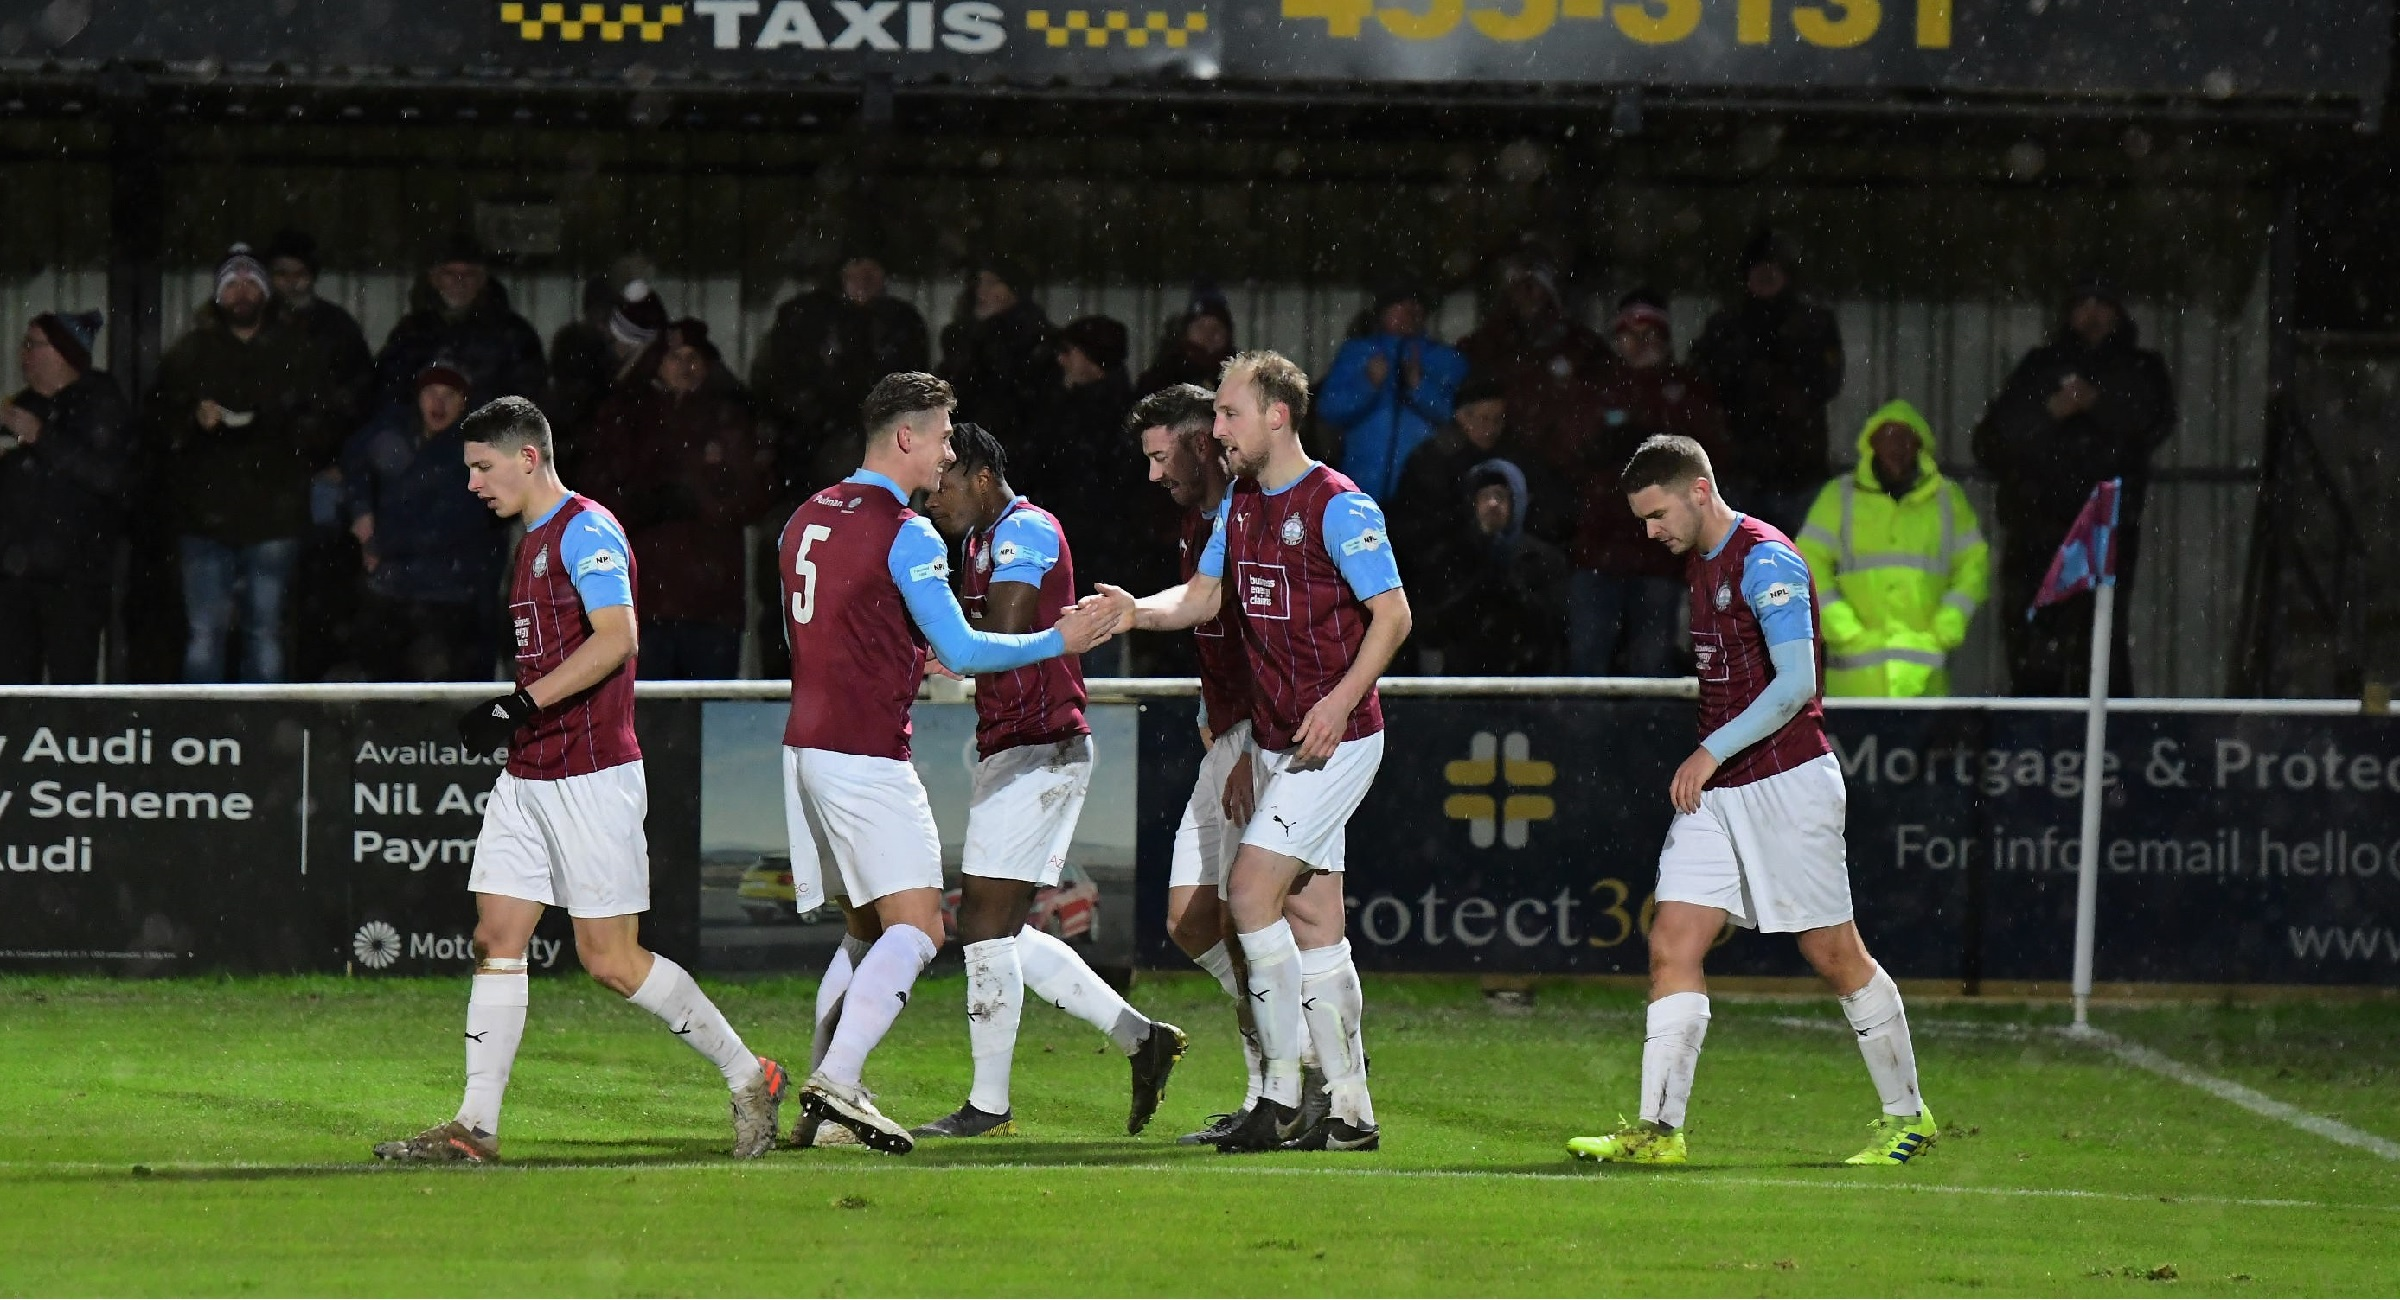 South Shields vs Southport